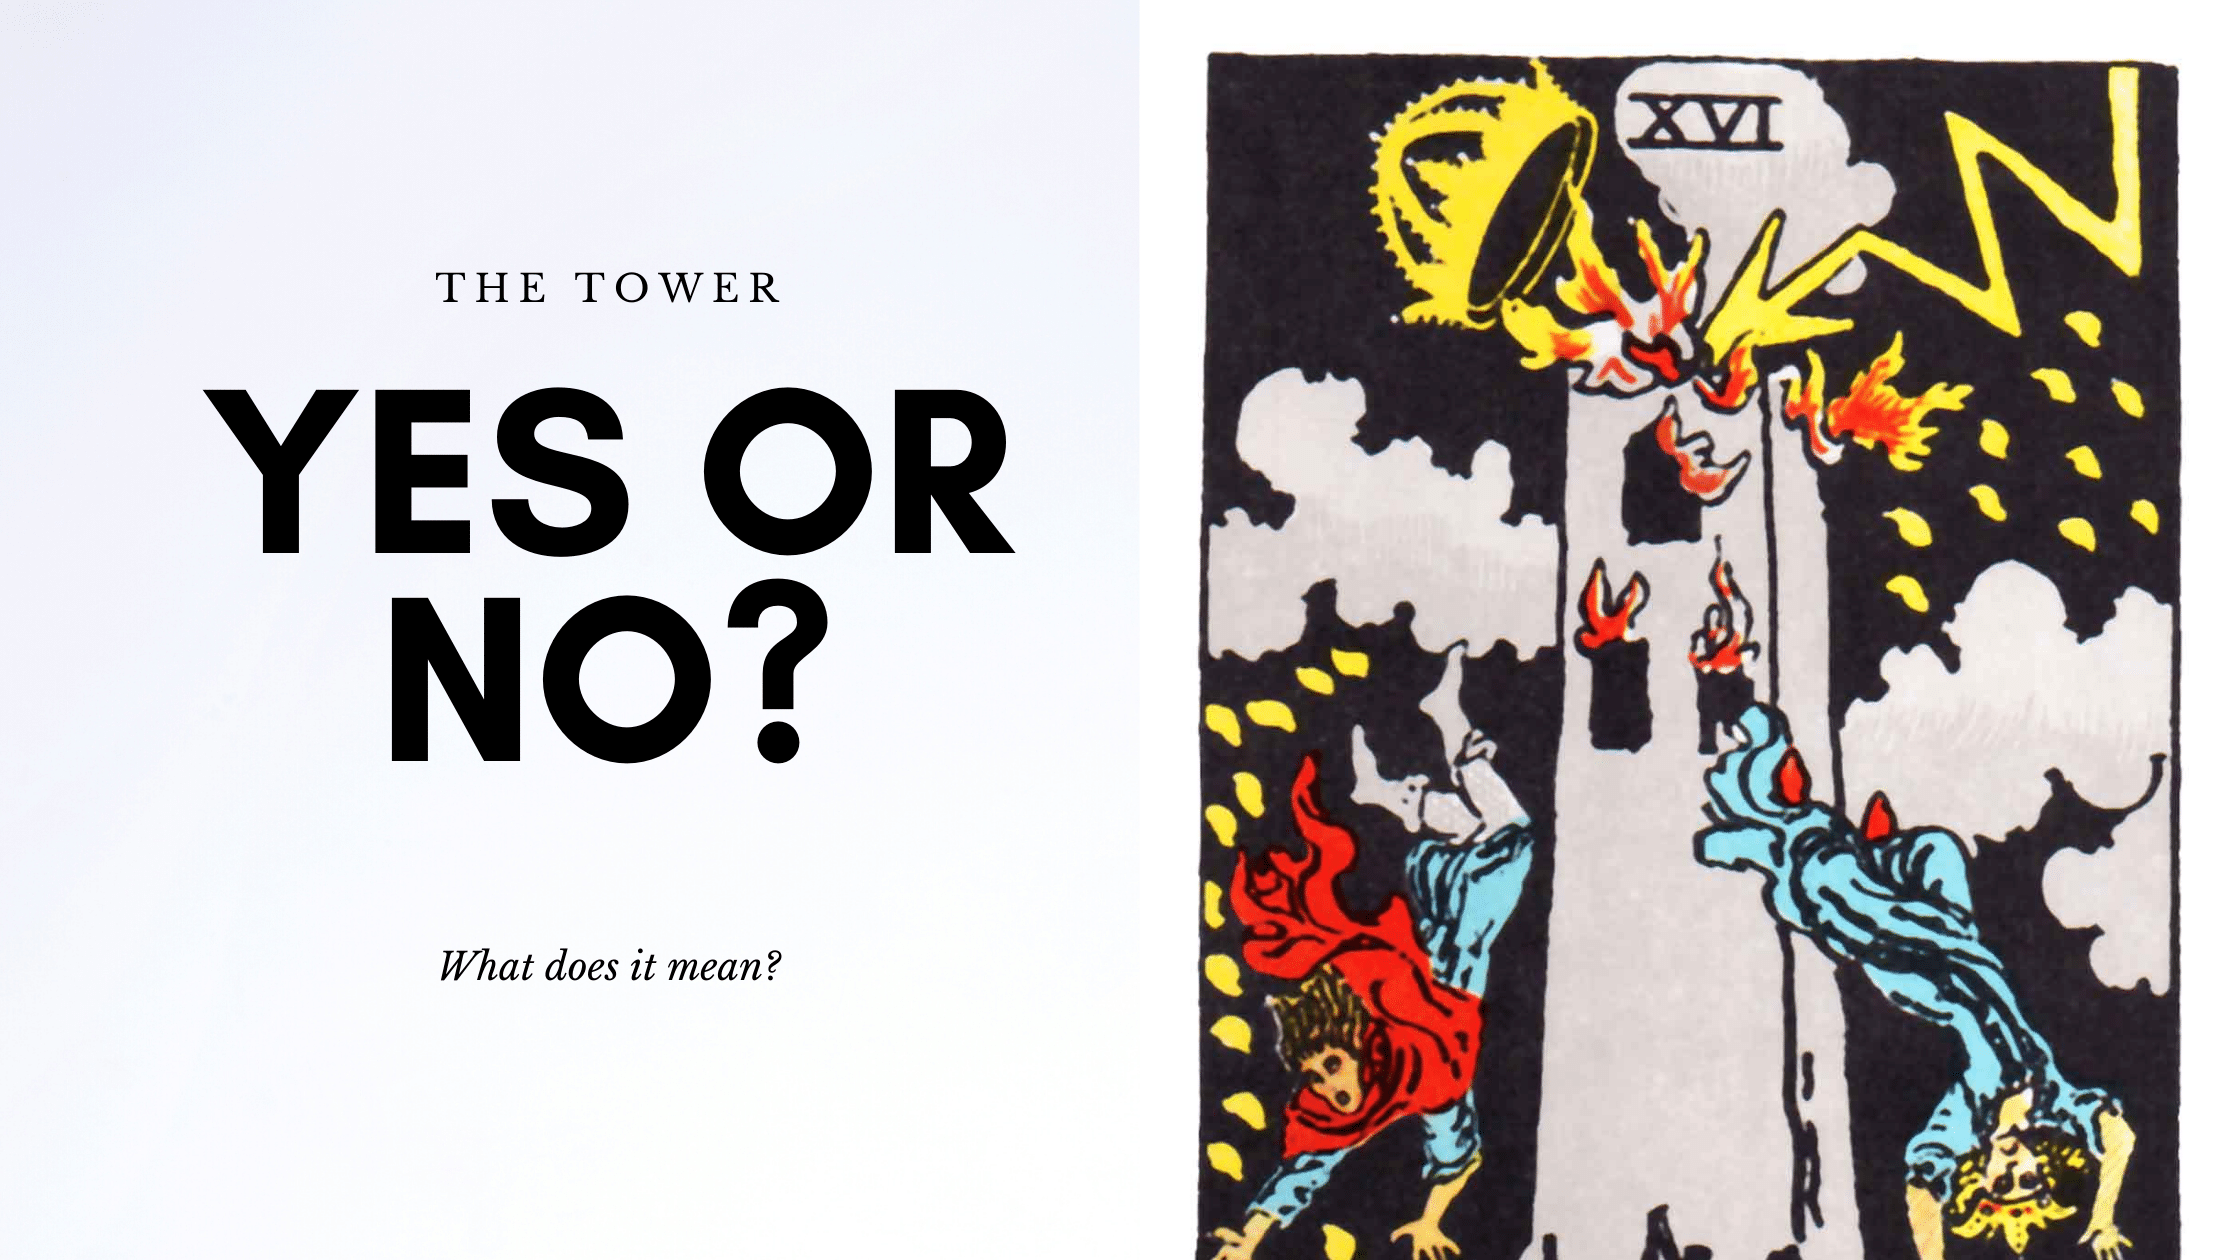 the tower yes or no